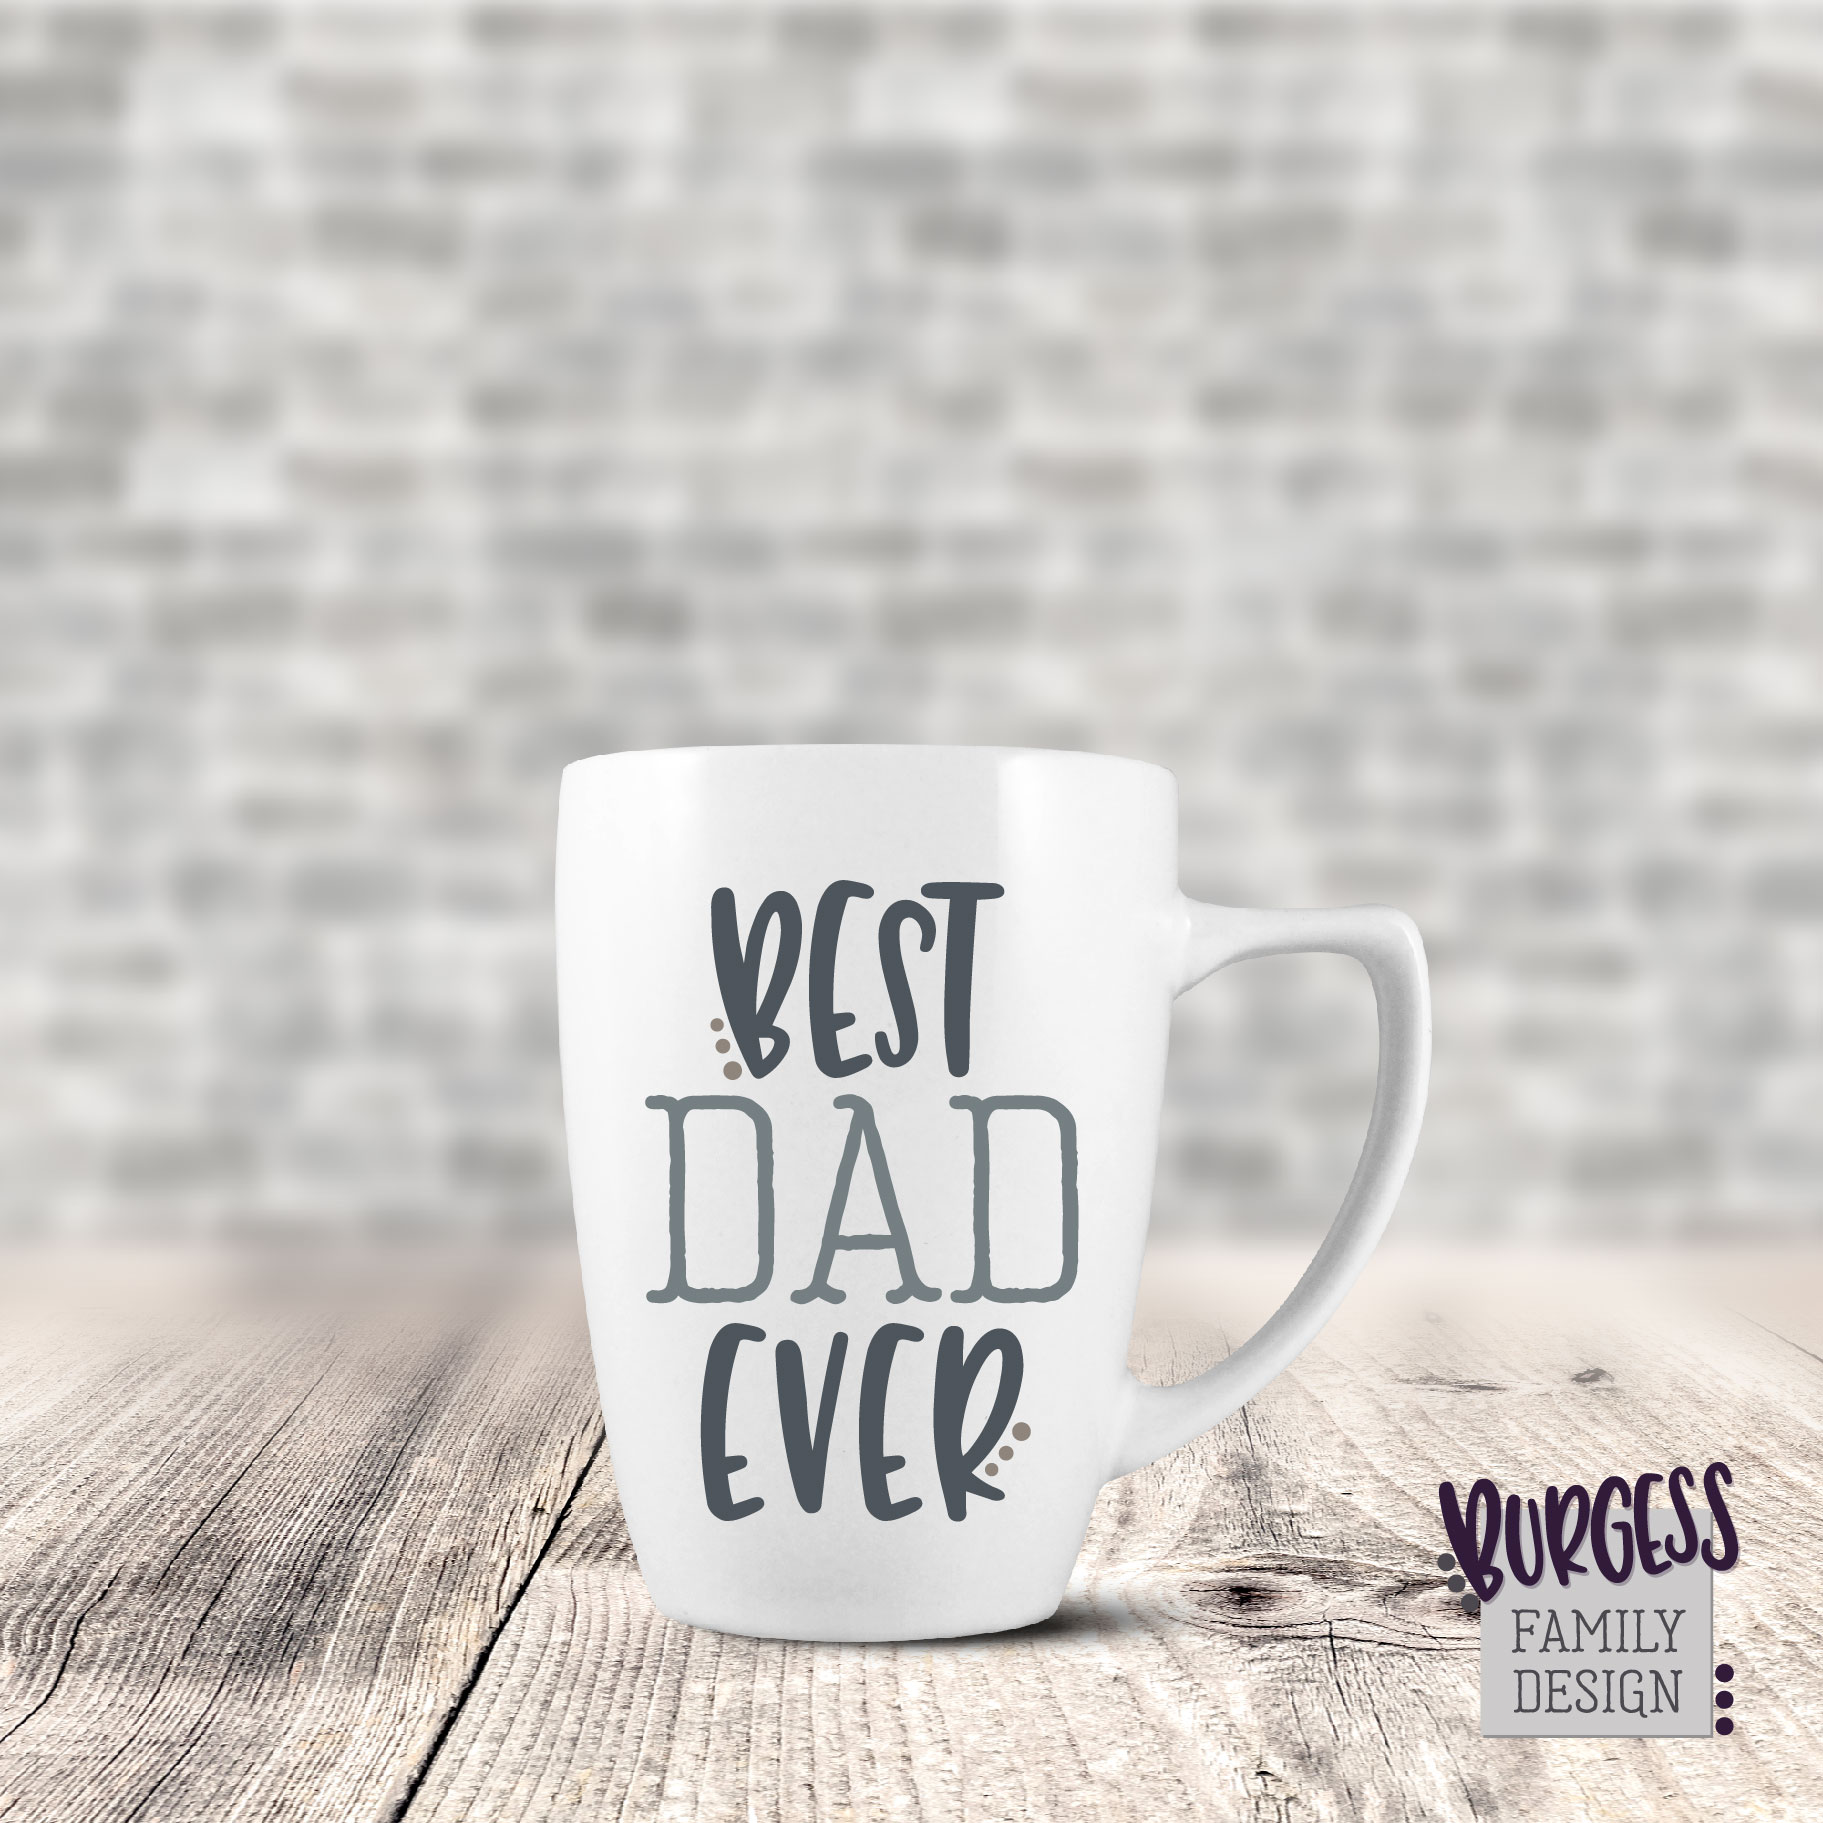 Best dad ever | SVG DXF EPS PNG example image 3